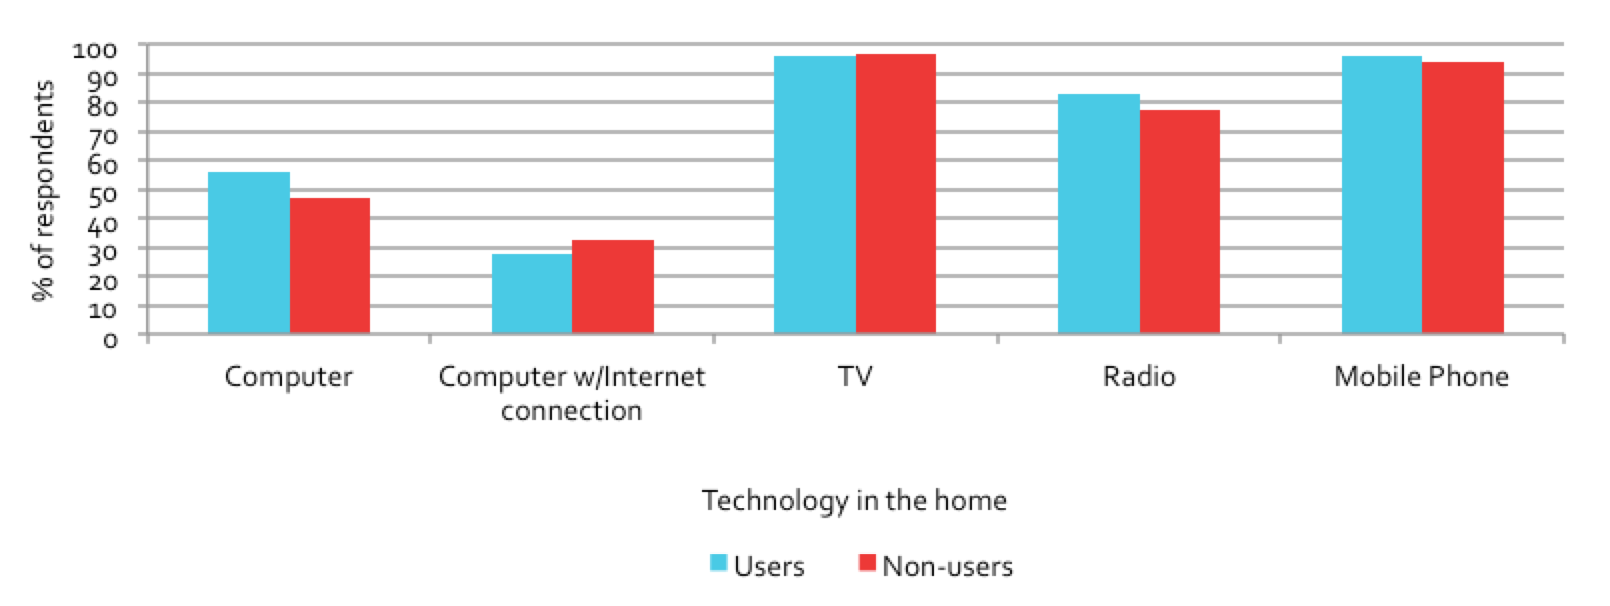 Figure 6.6: Comparison of user and non-user technology in the home